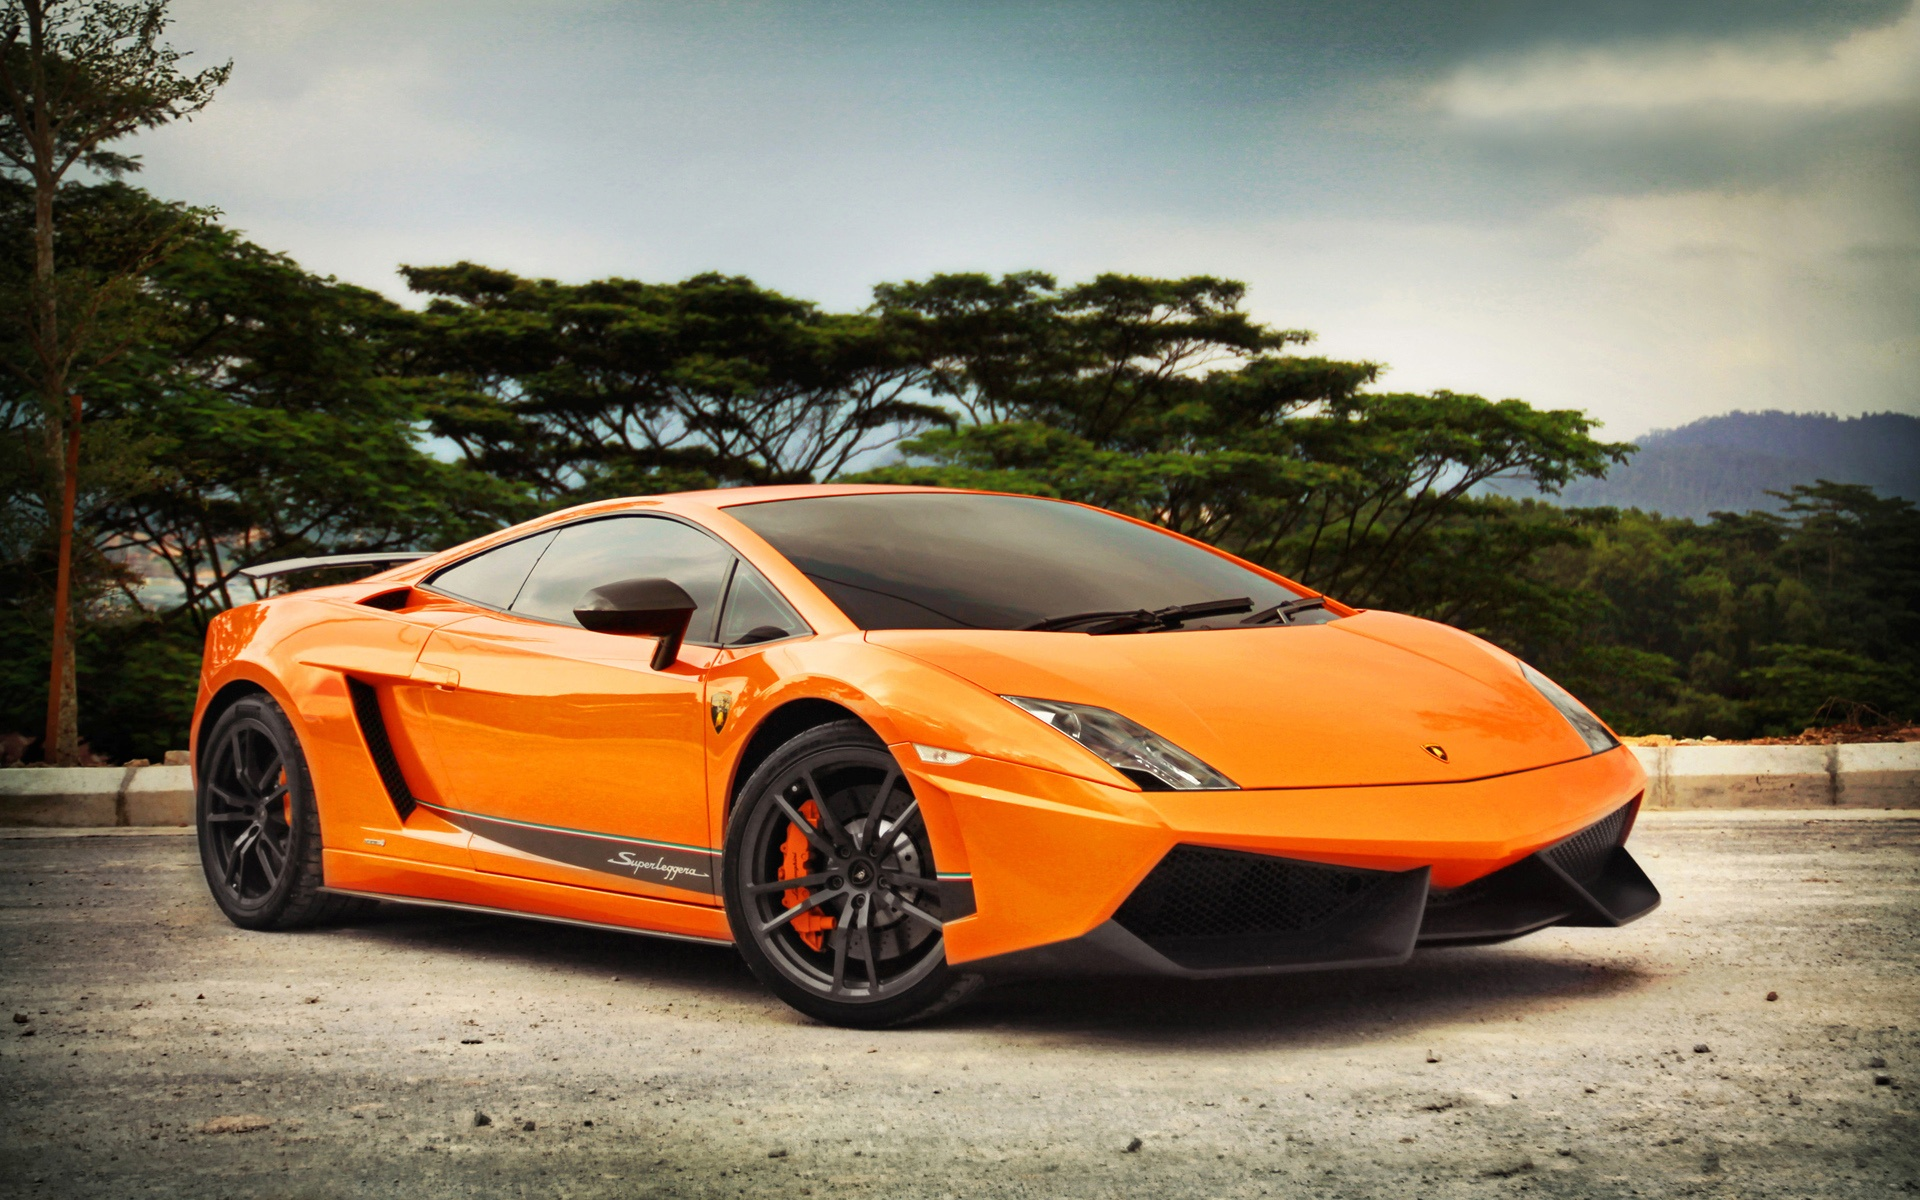 Wallpaper Lamborghini Gallardo Lp570 4 Orange Color 1920x1200 Hd